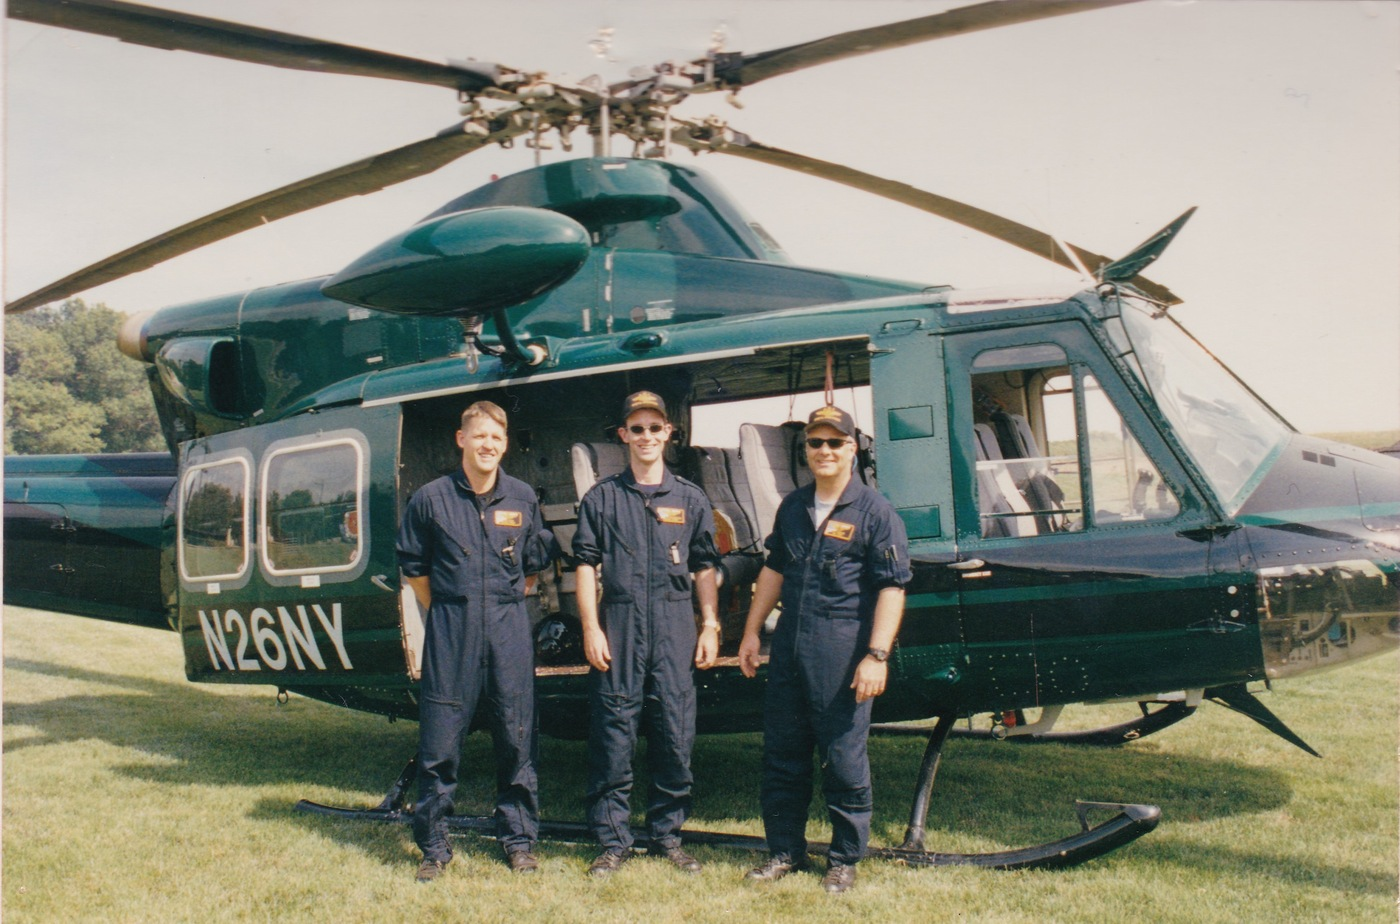 """Scott McDonough (center), with Supervisory Special Agent Jeffrey Angelos (now retired), left, and Supervisory Special Agent John Wyatt (also now retired), right. The three pilots flew over New York in the weeks following the 9/11 attacks. The """"tail number"""" of the helicopter, 26NY, refers to the address of the FBI's New York Field Office: 26 Federal Plaza."""